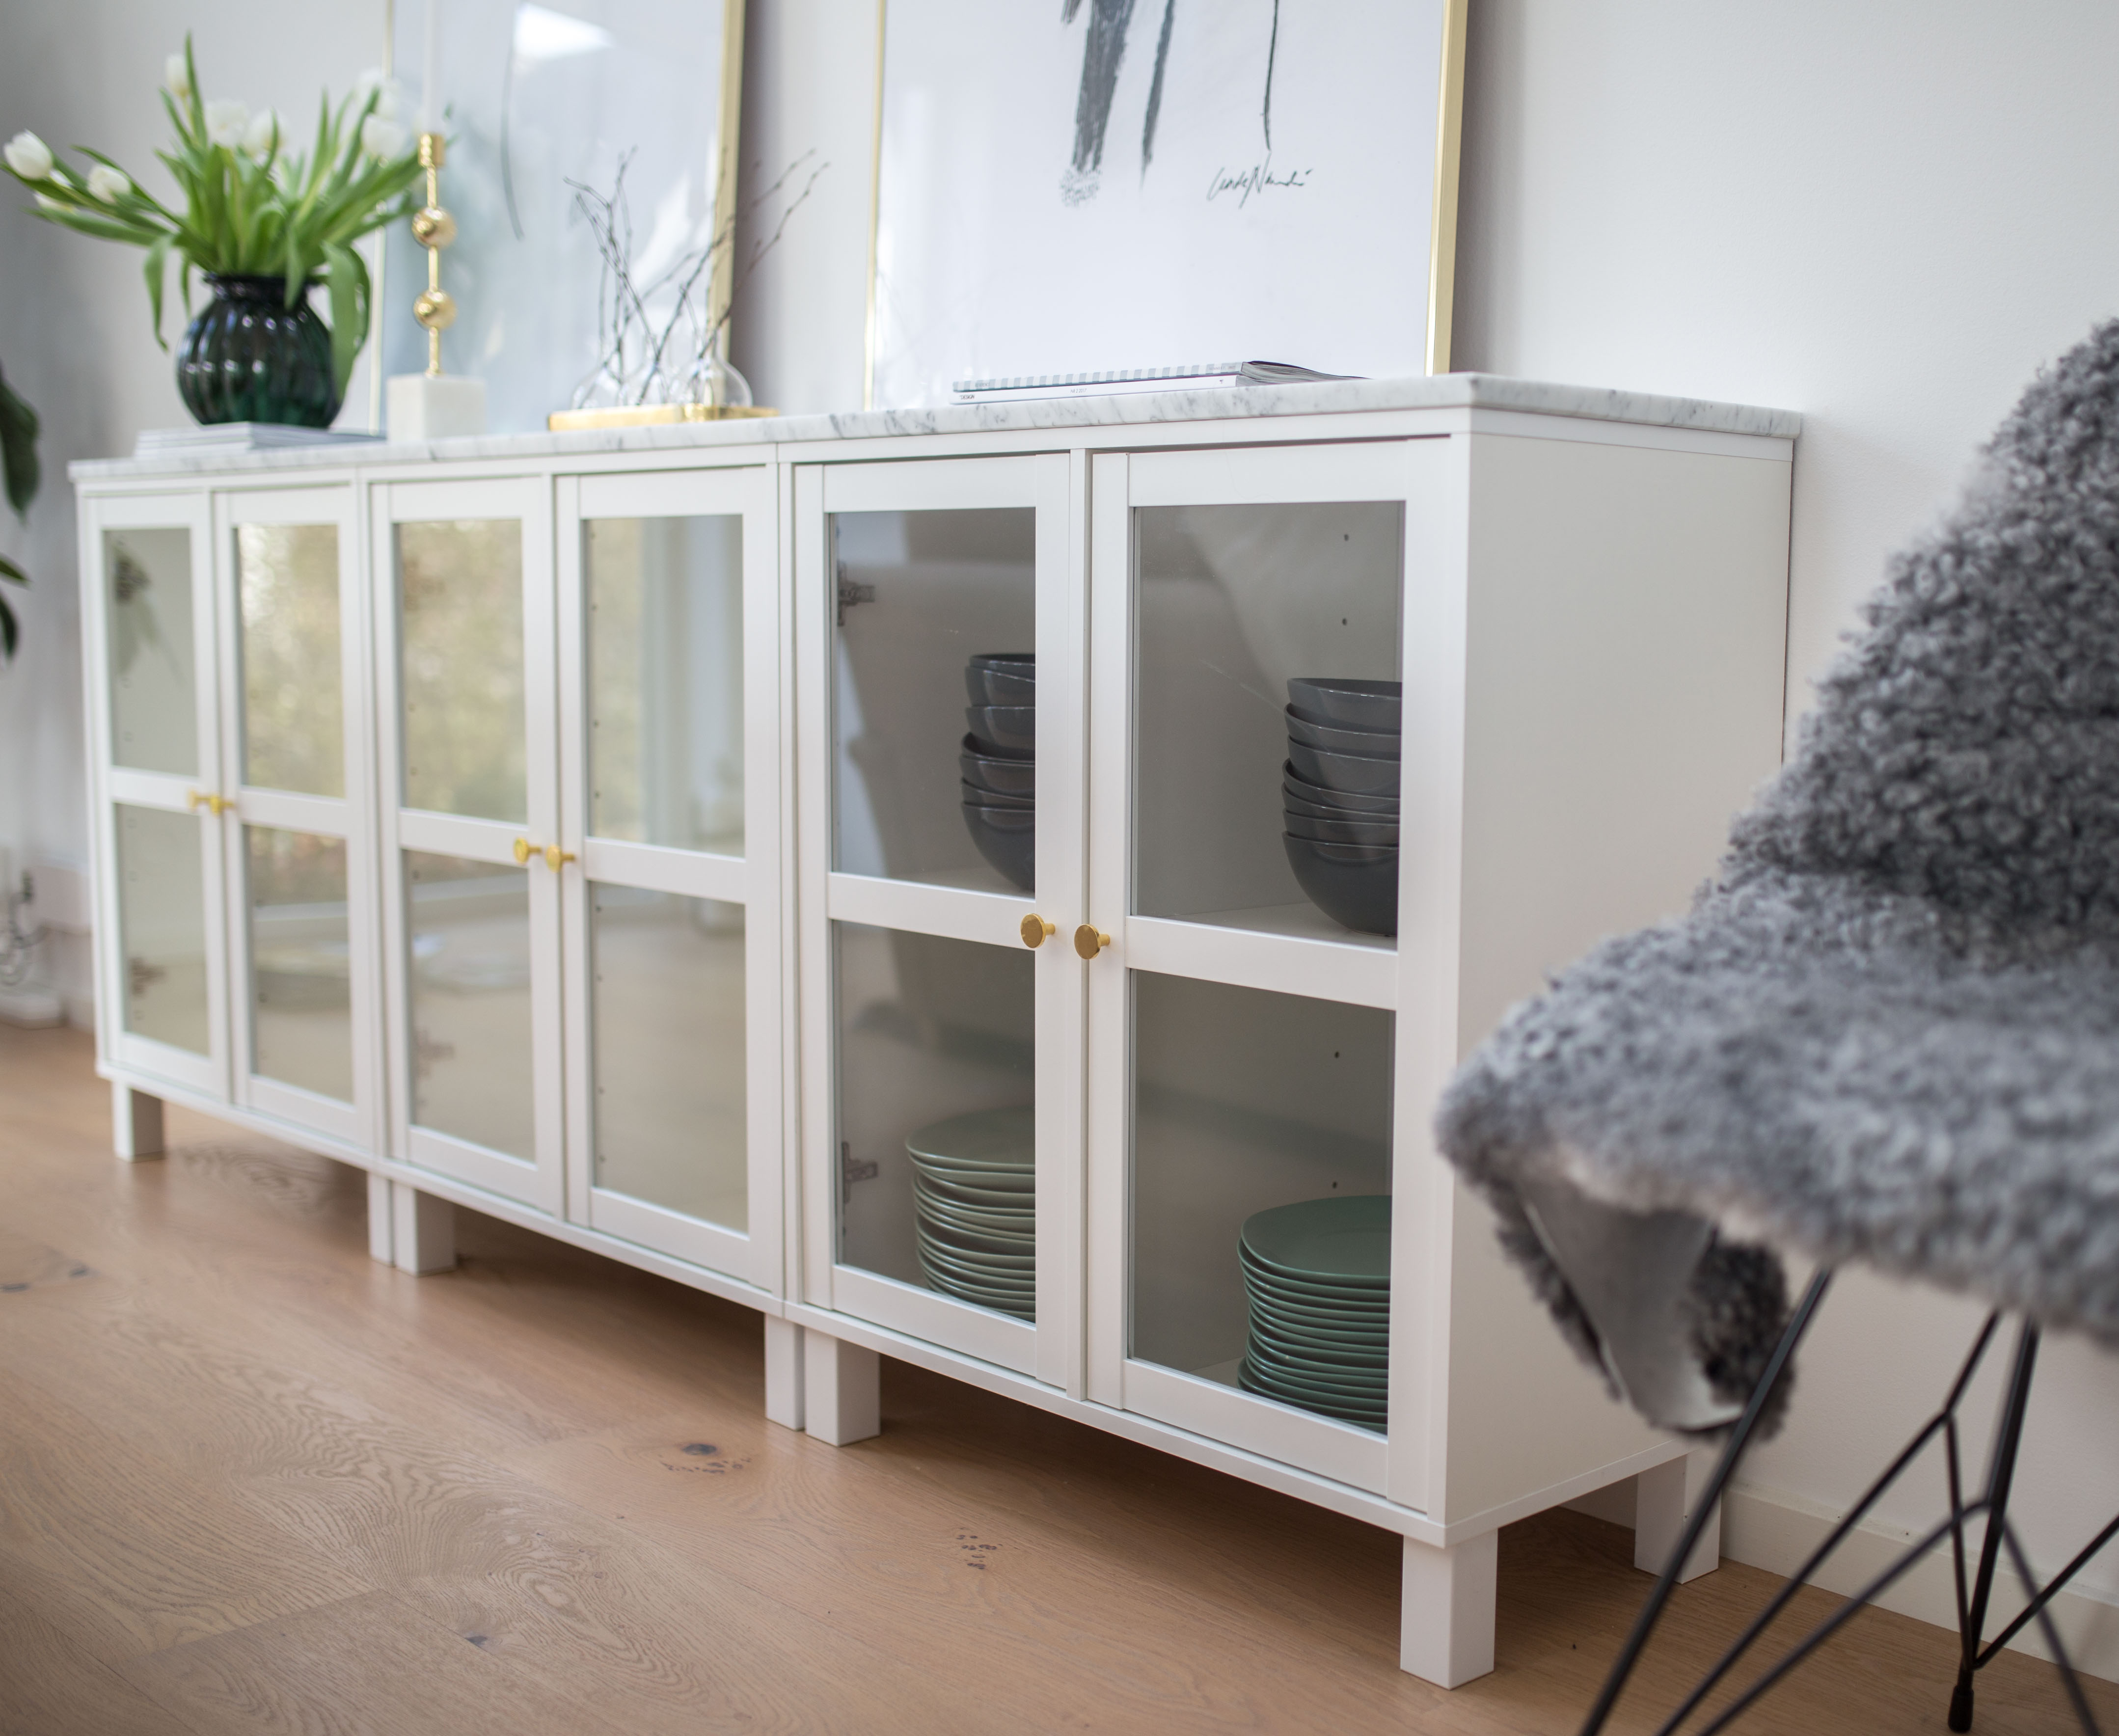 How to make a budget sideboard look expensive